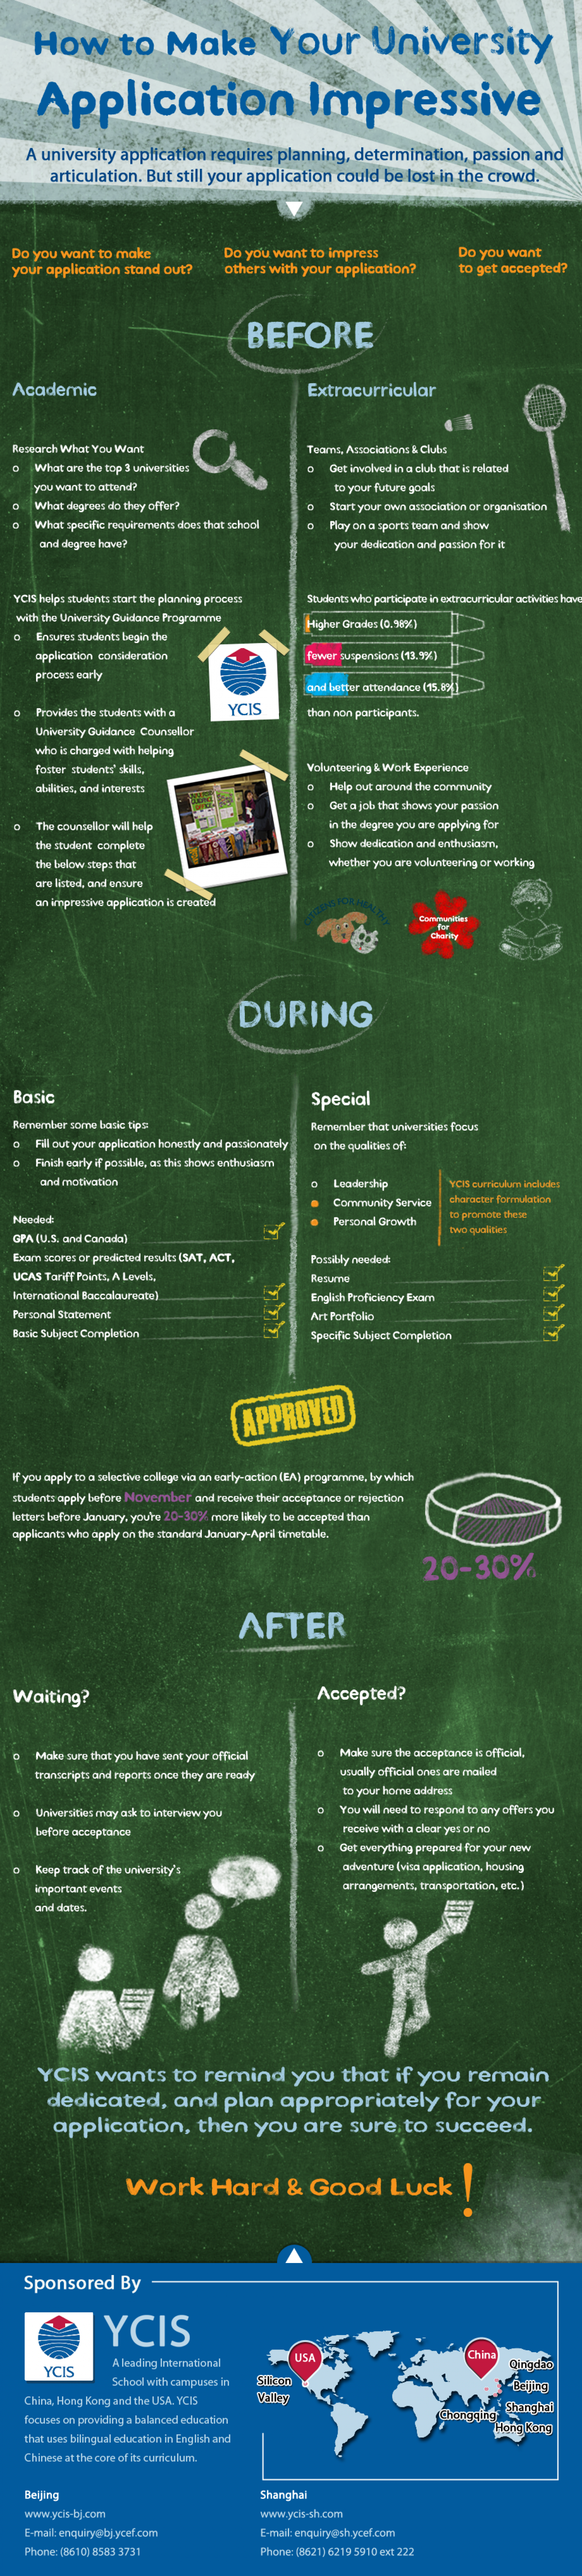 How to Make Your University Application Impressive Infographic